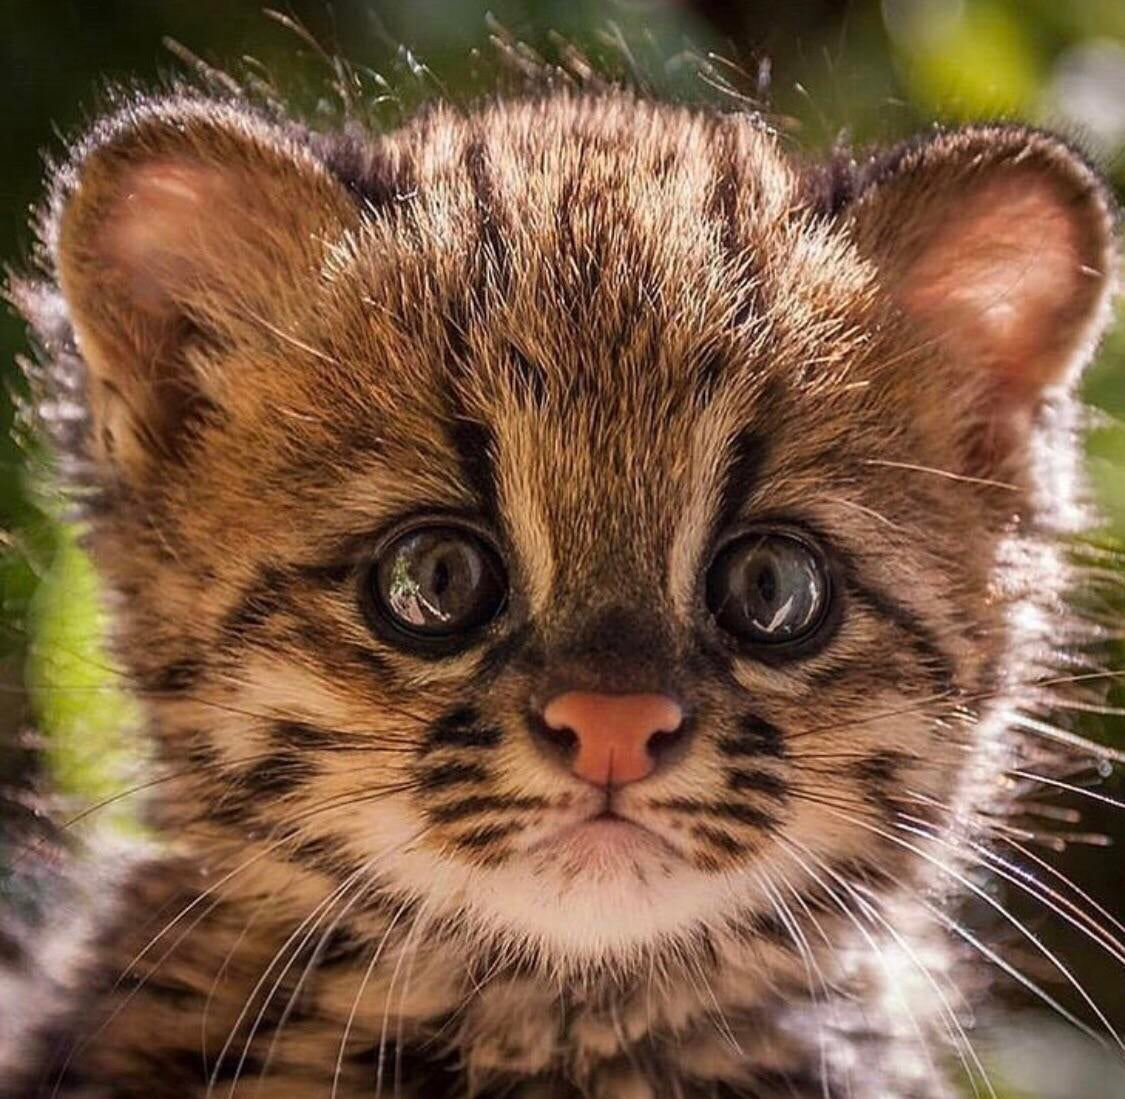 Cute animals image by Max Martinez Baby animals funny